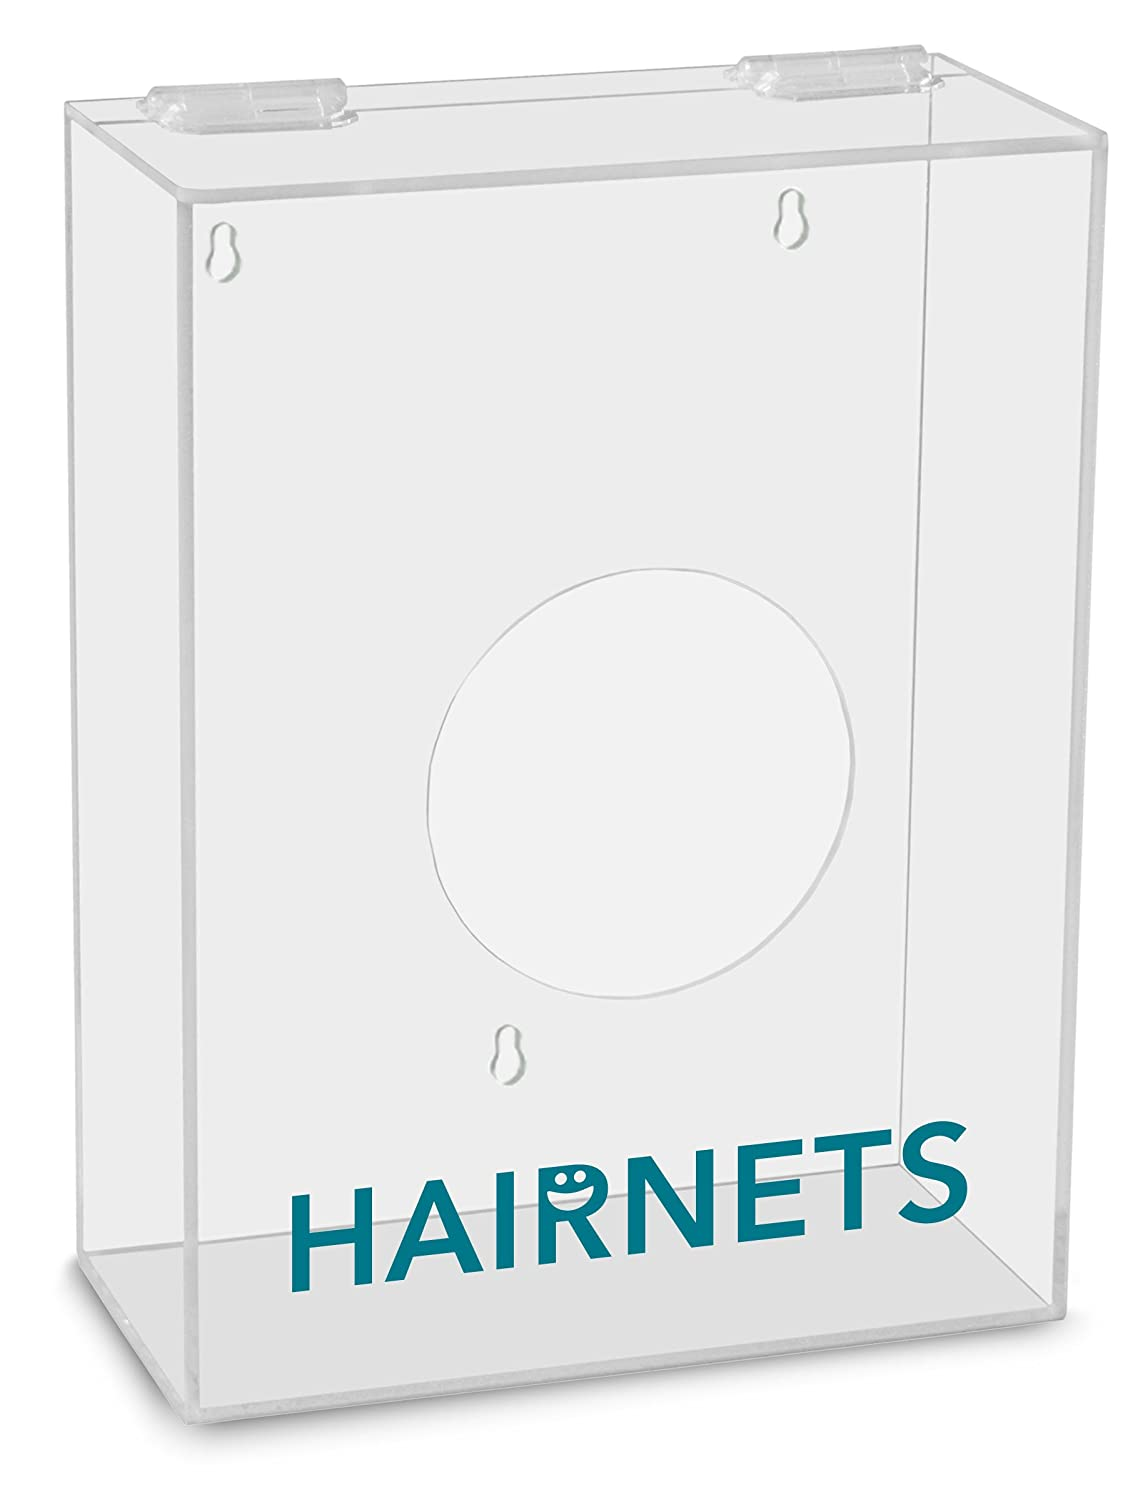 TrippNT 51308 Hairnets Labeled Small Apparel Dispenser, 9-Inch Width x 12-Inch Height x 4-Inch Depth